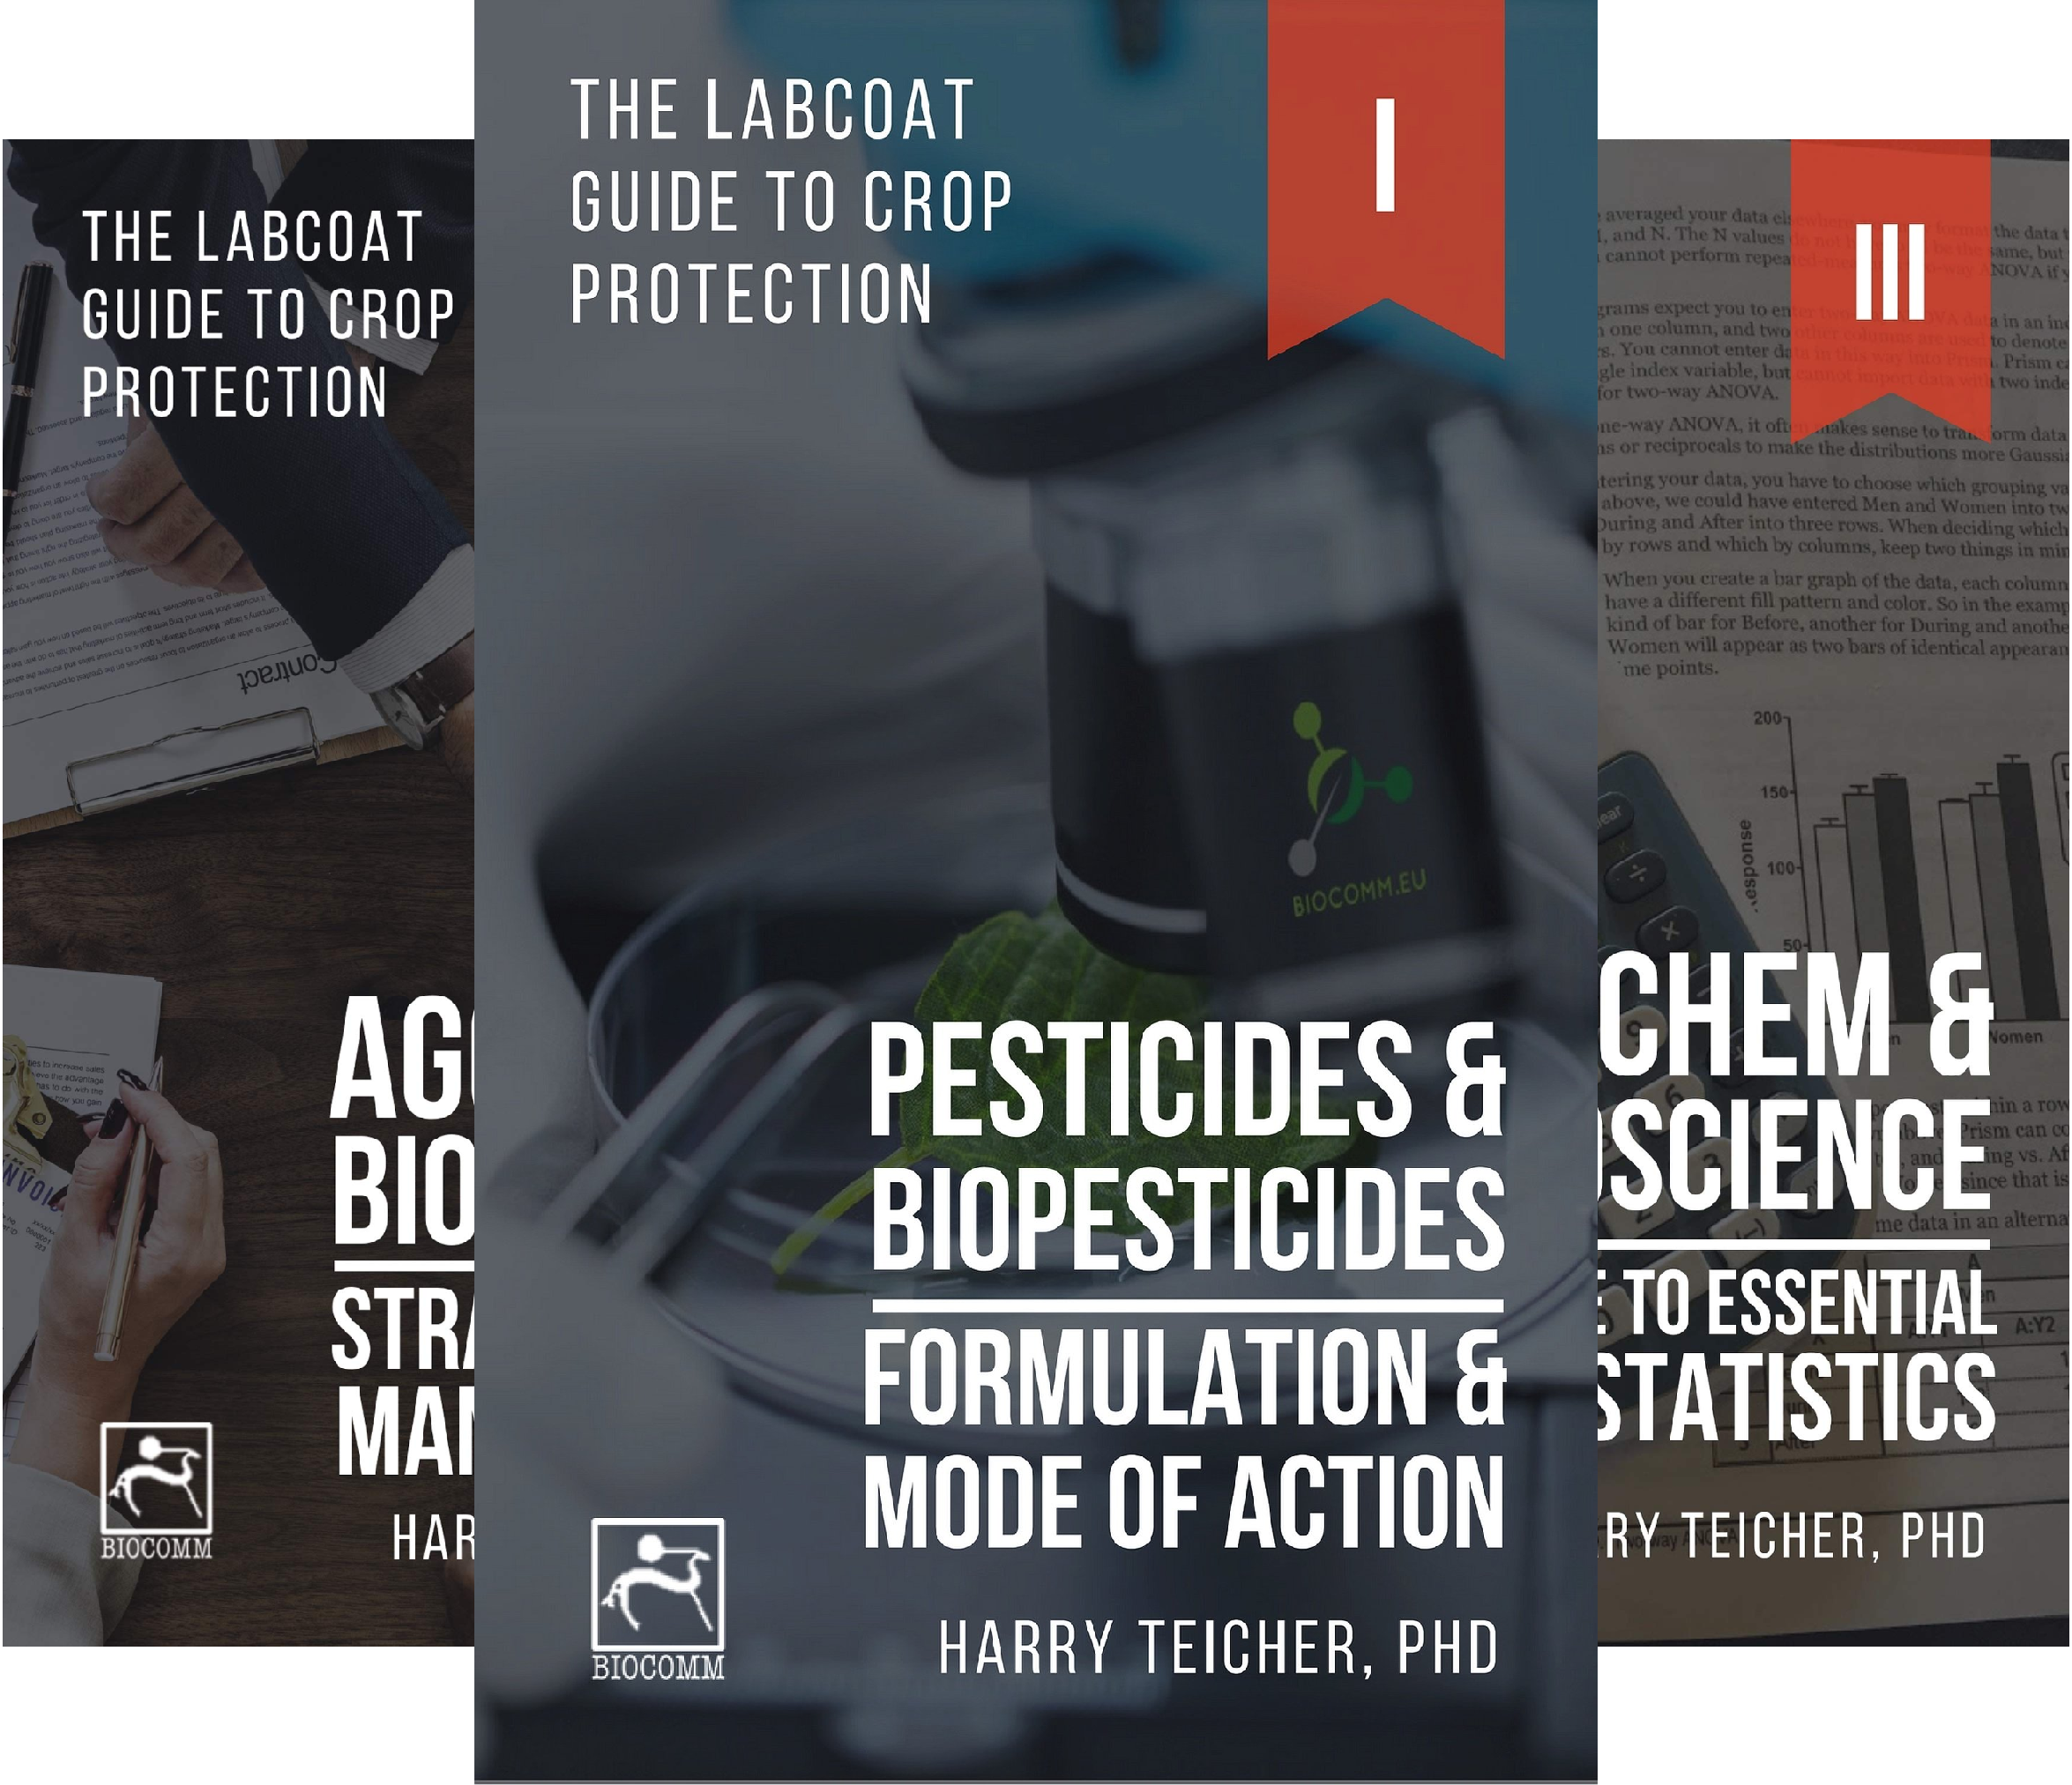 THE LABCOAT GUIDE TO CROP PROTECTION (4 Book Series)